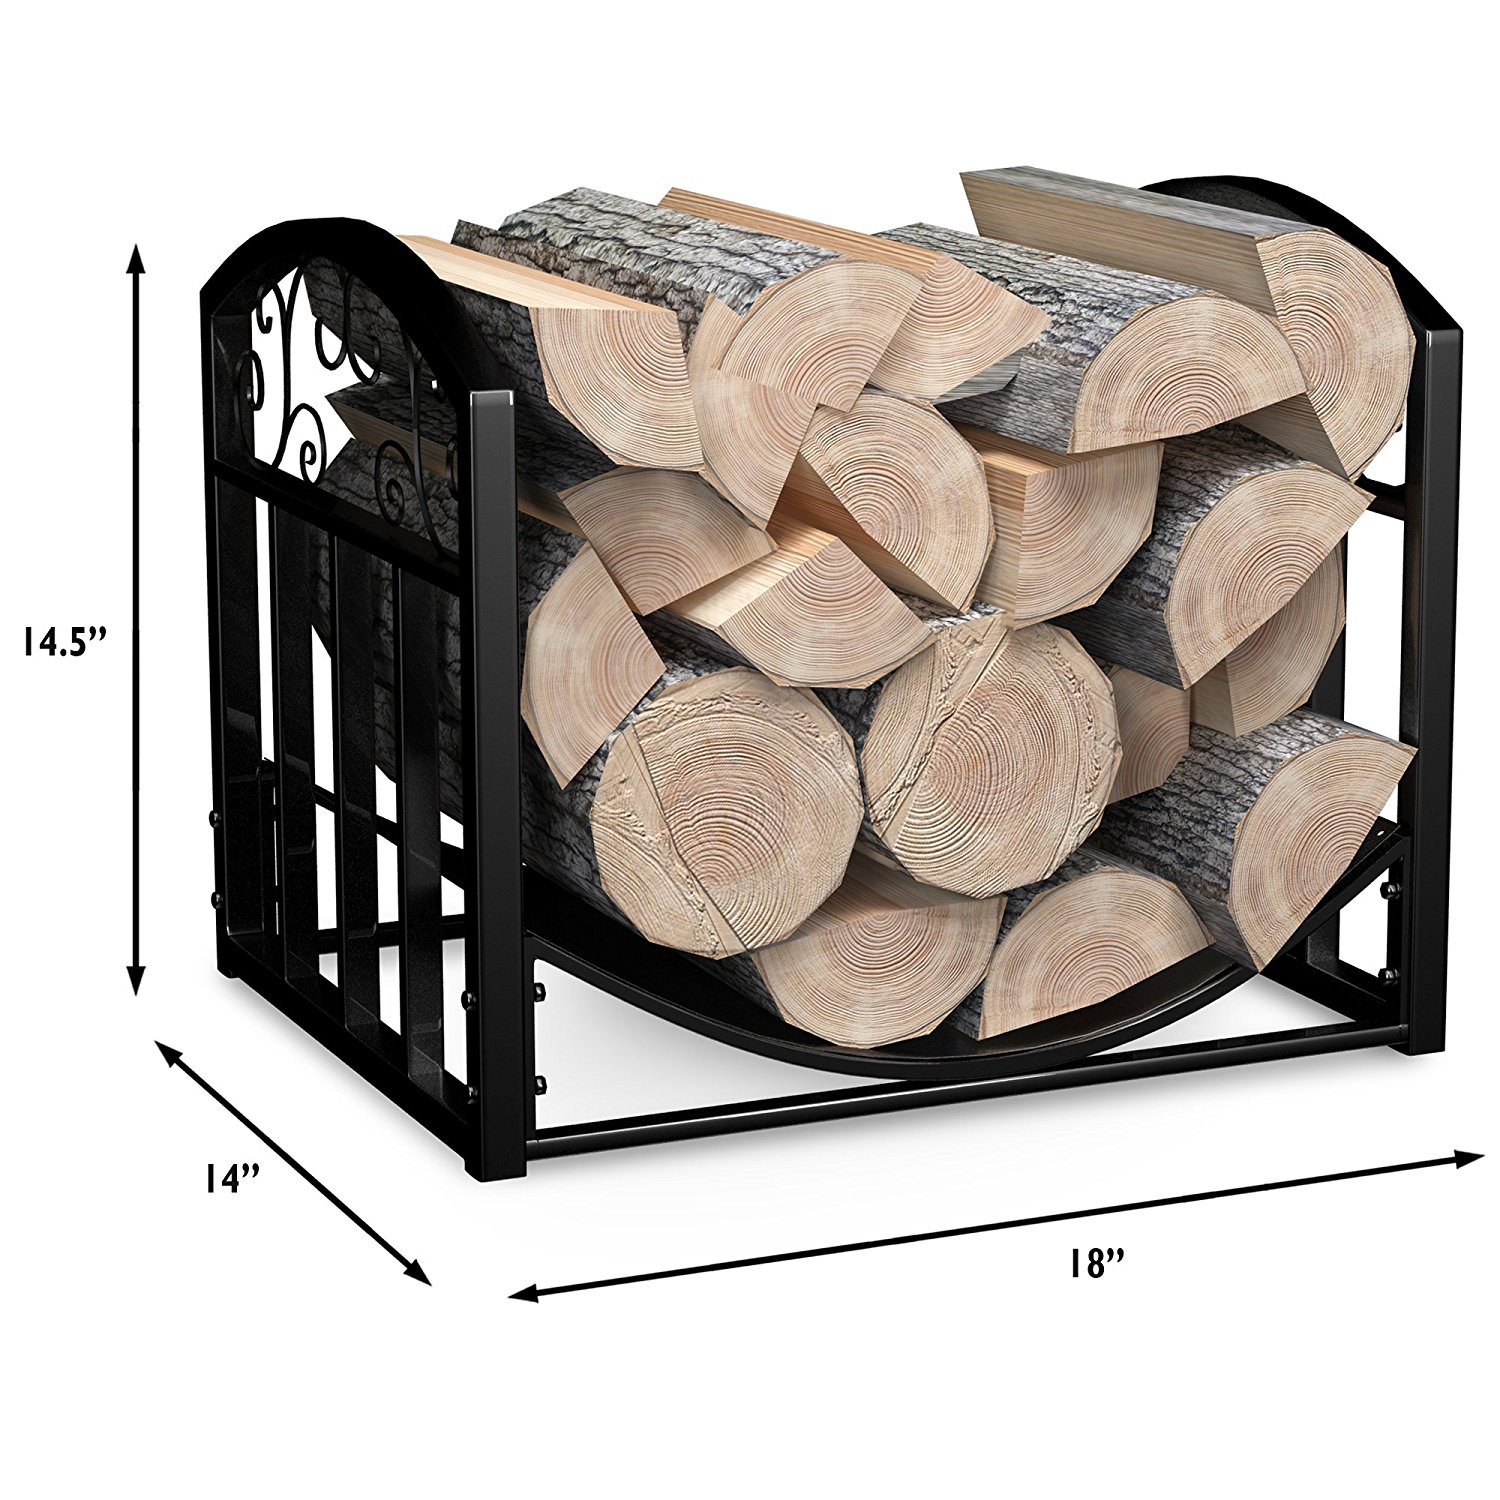 shelve pictures best wood wine storage racks interesting design ikea trends ideas on inspiring flooring rack open style enchanting large natural wooden for enthusiast furniture standing